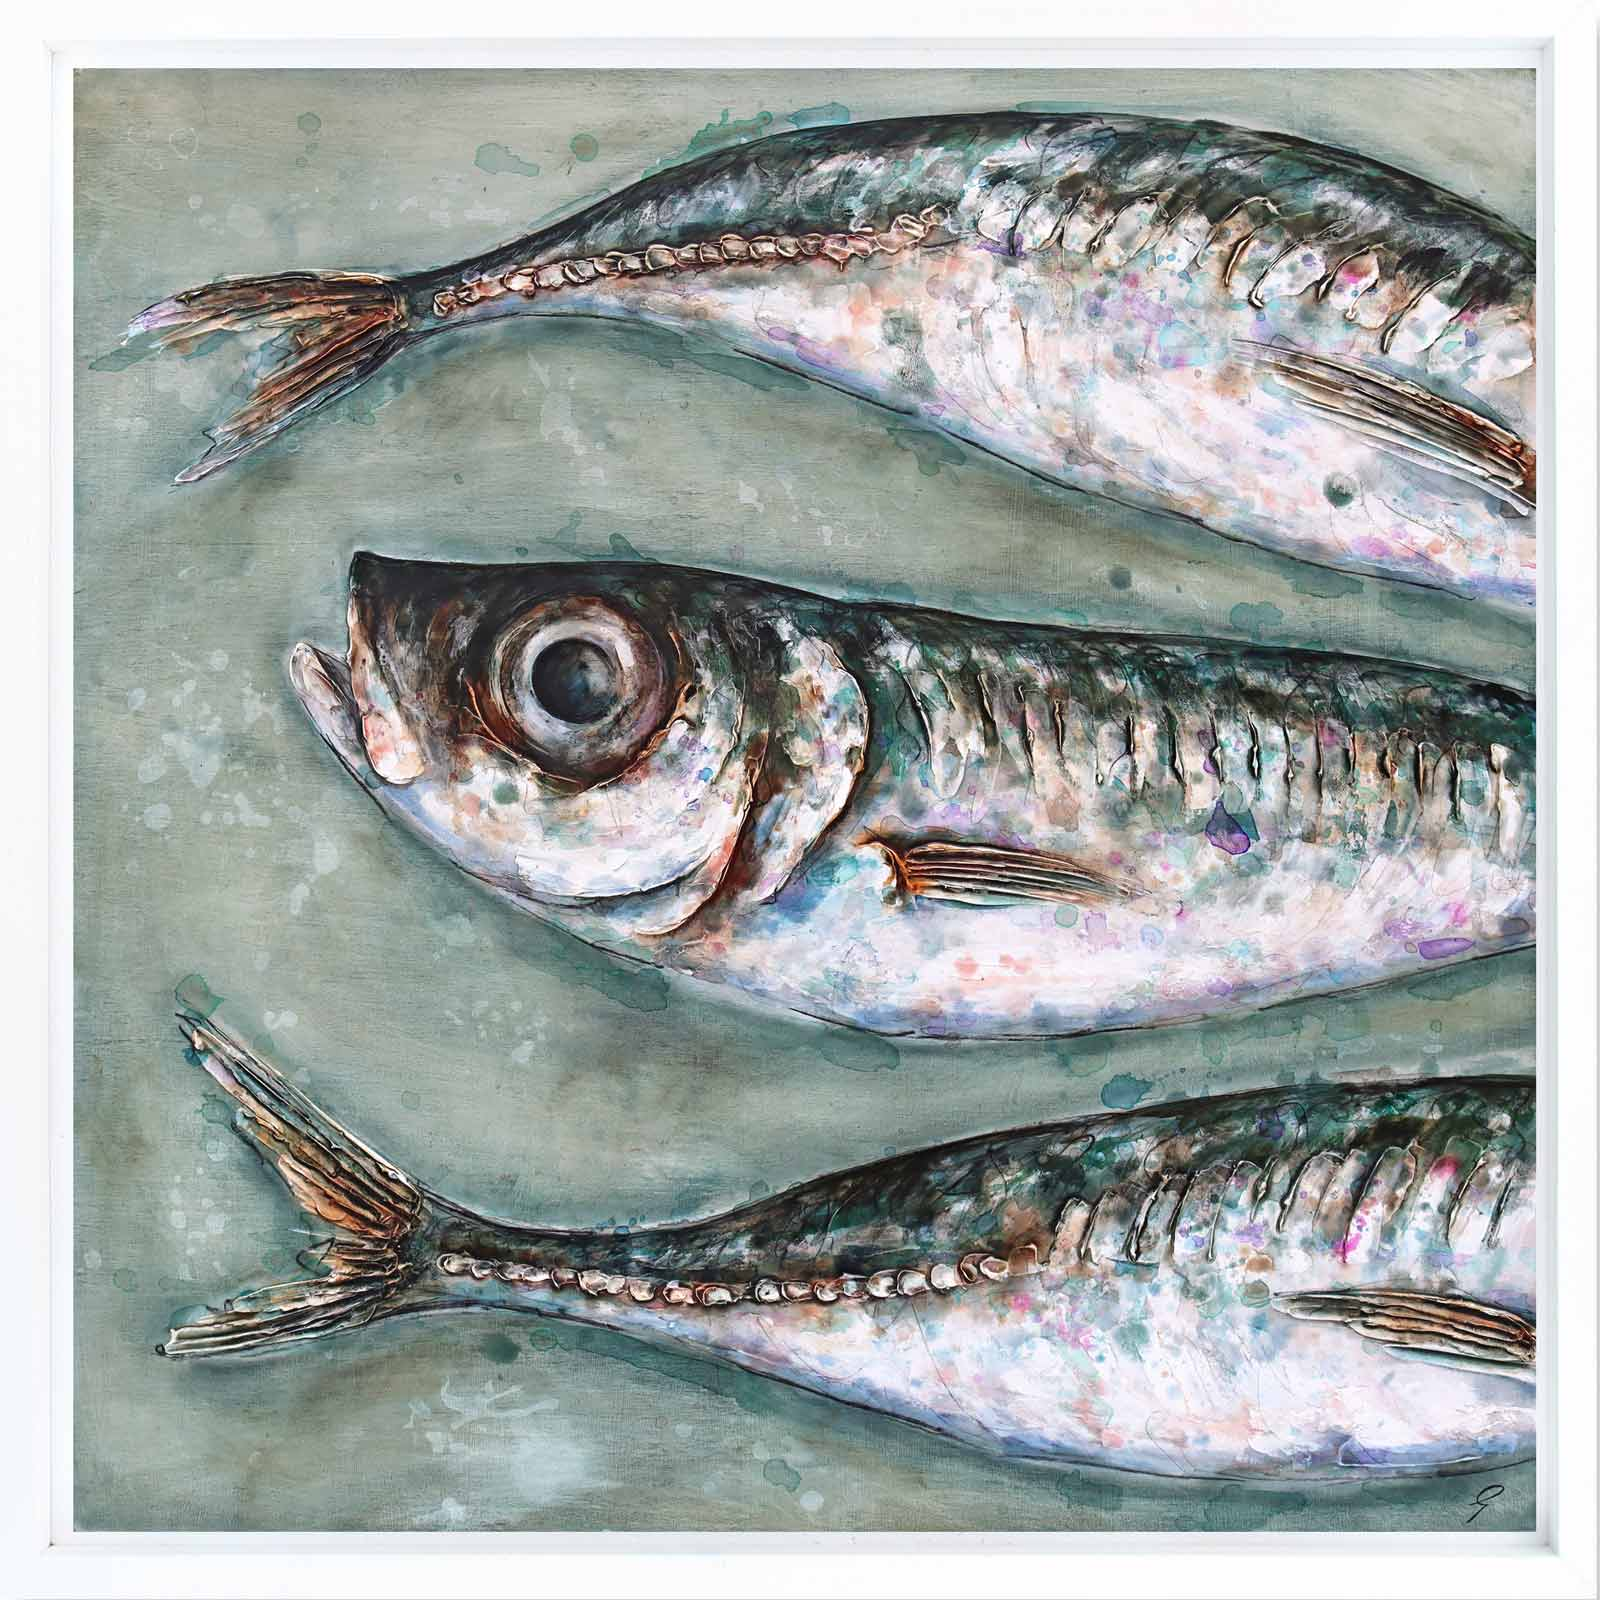 Three Large Mackerel Scad